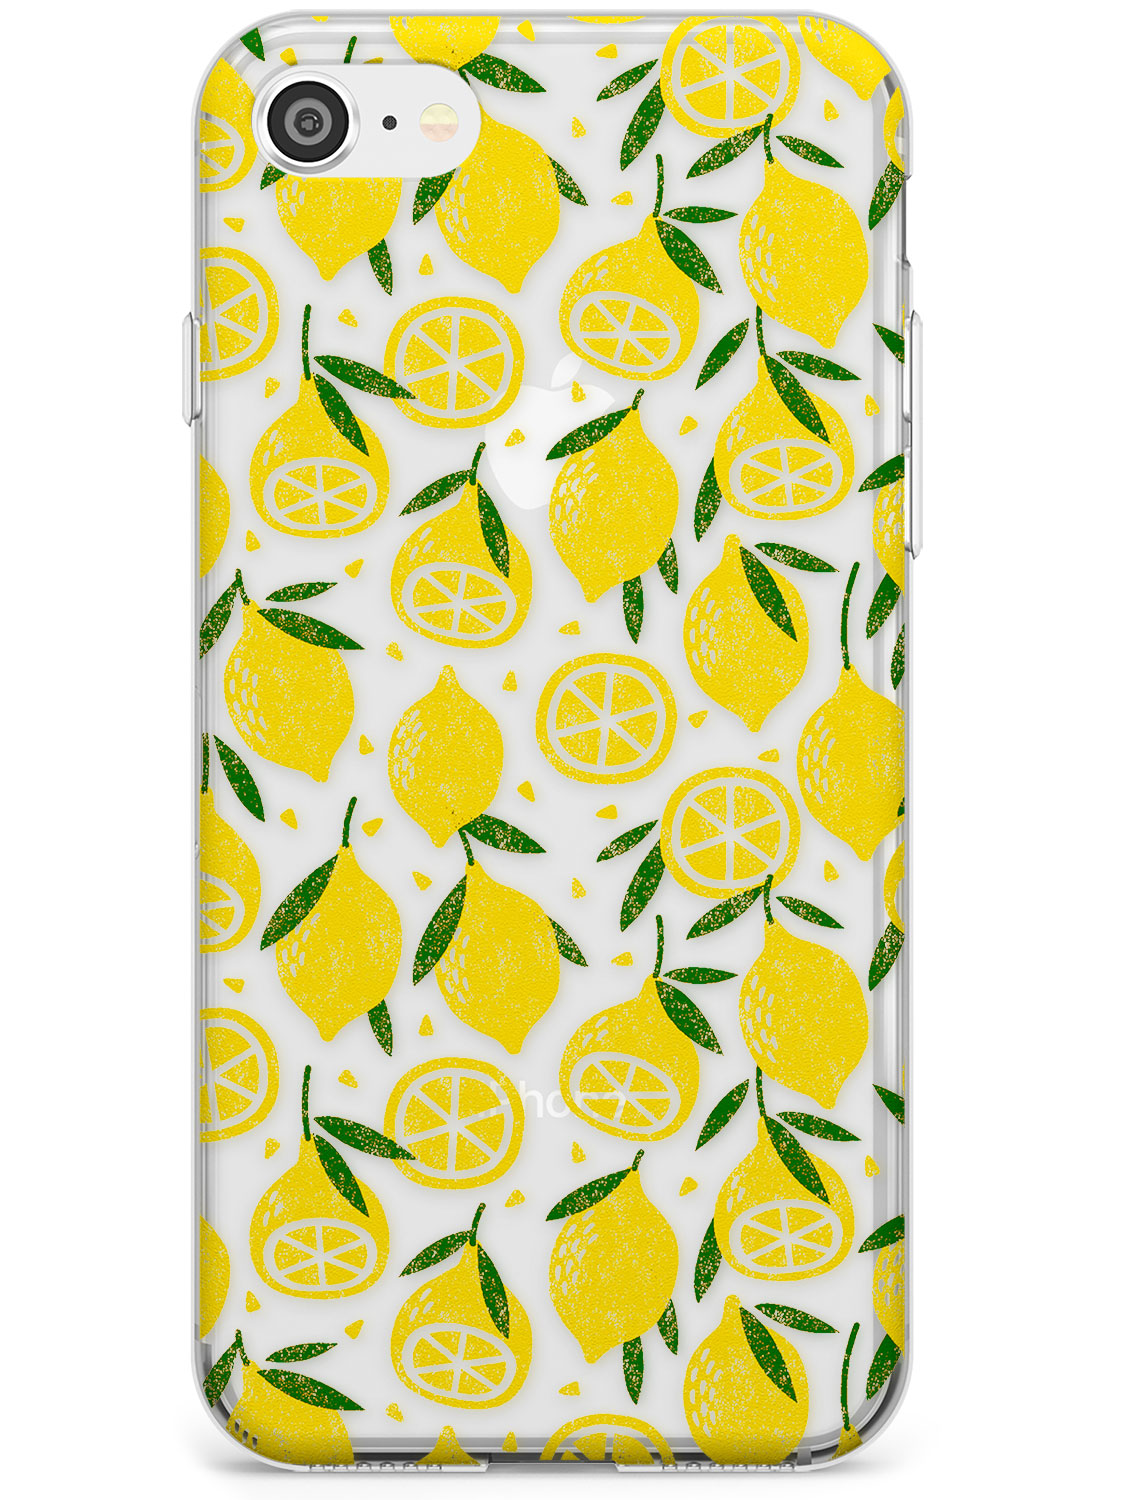 Bright Lemon Fruity Pattern iPhone Case by Case Warehouse ®